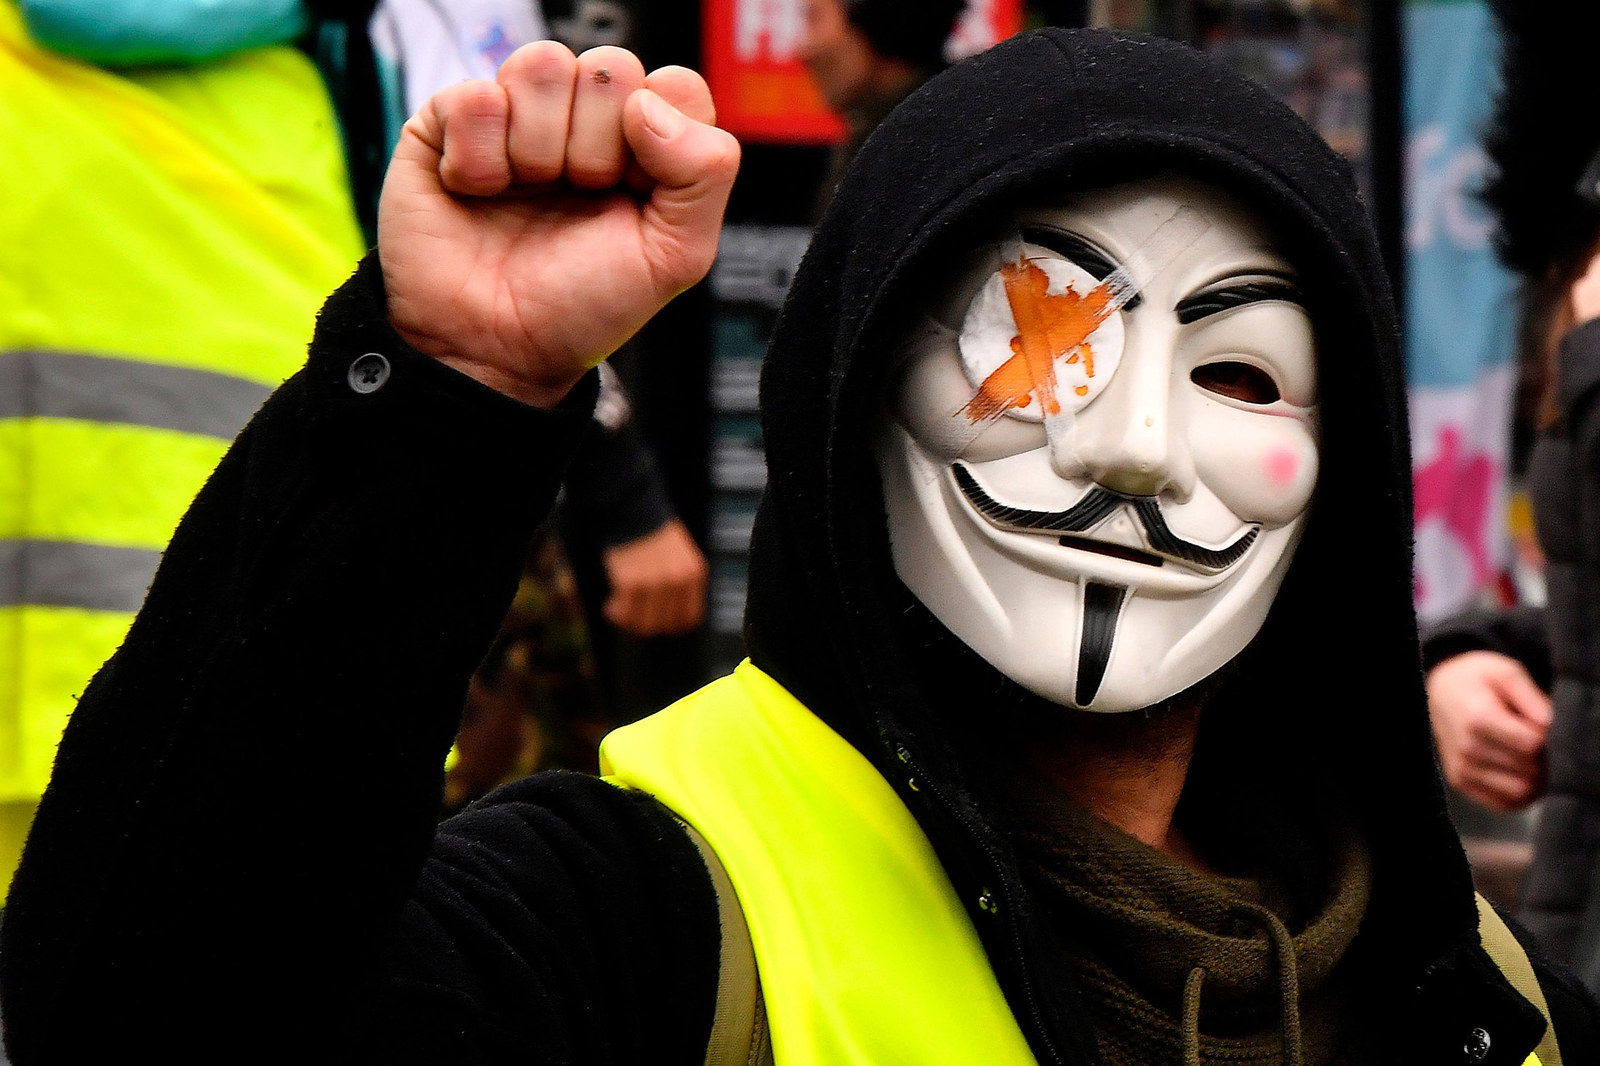 """A """"Yellow Vest"""" supporter wears a Guy Fawkes mask with a bandaged eye representing those protesters injured by the French police, as he takes part in a 'Day of strikes' in Bordeaux, France, on Feb. 5."""